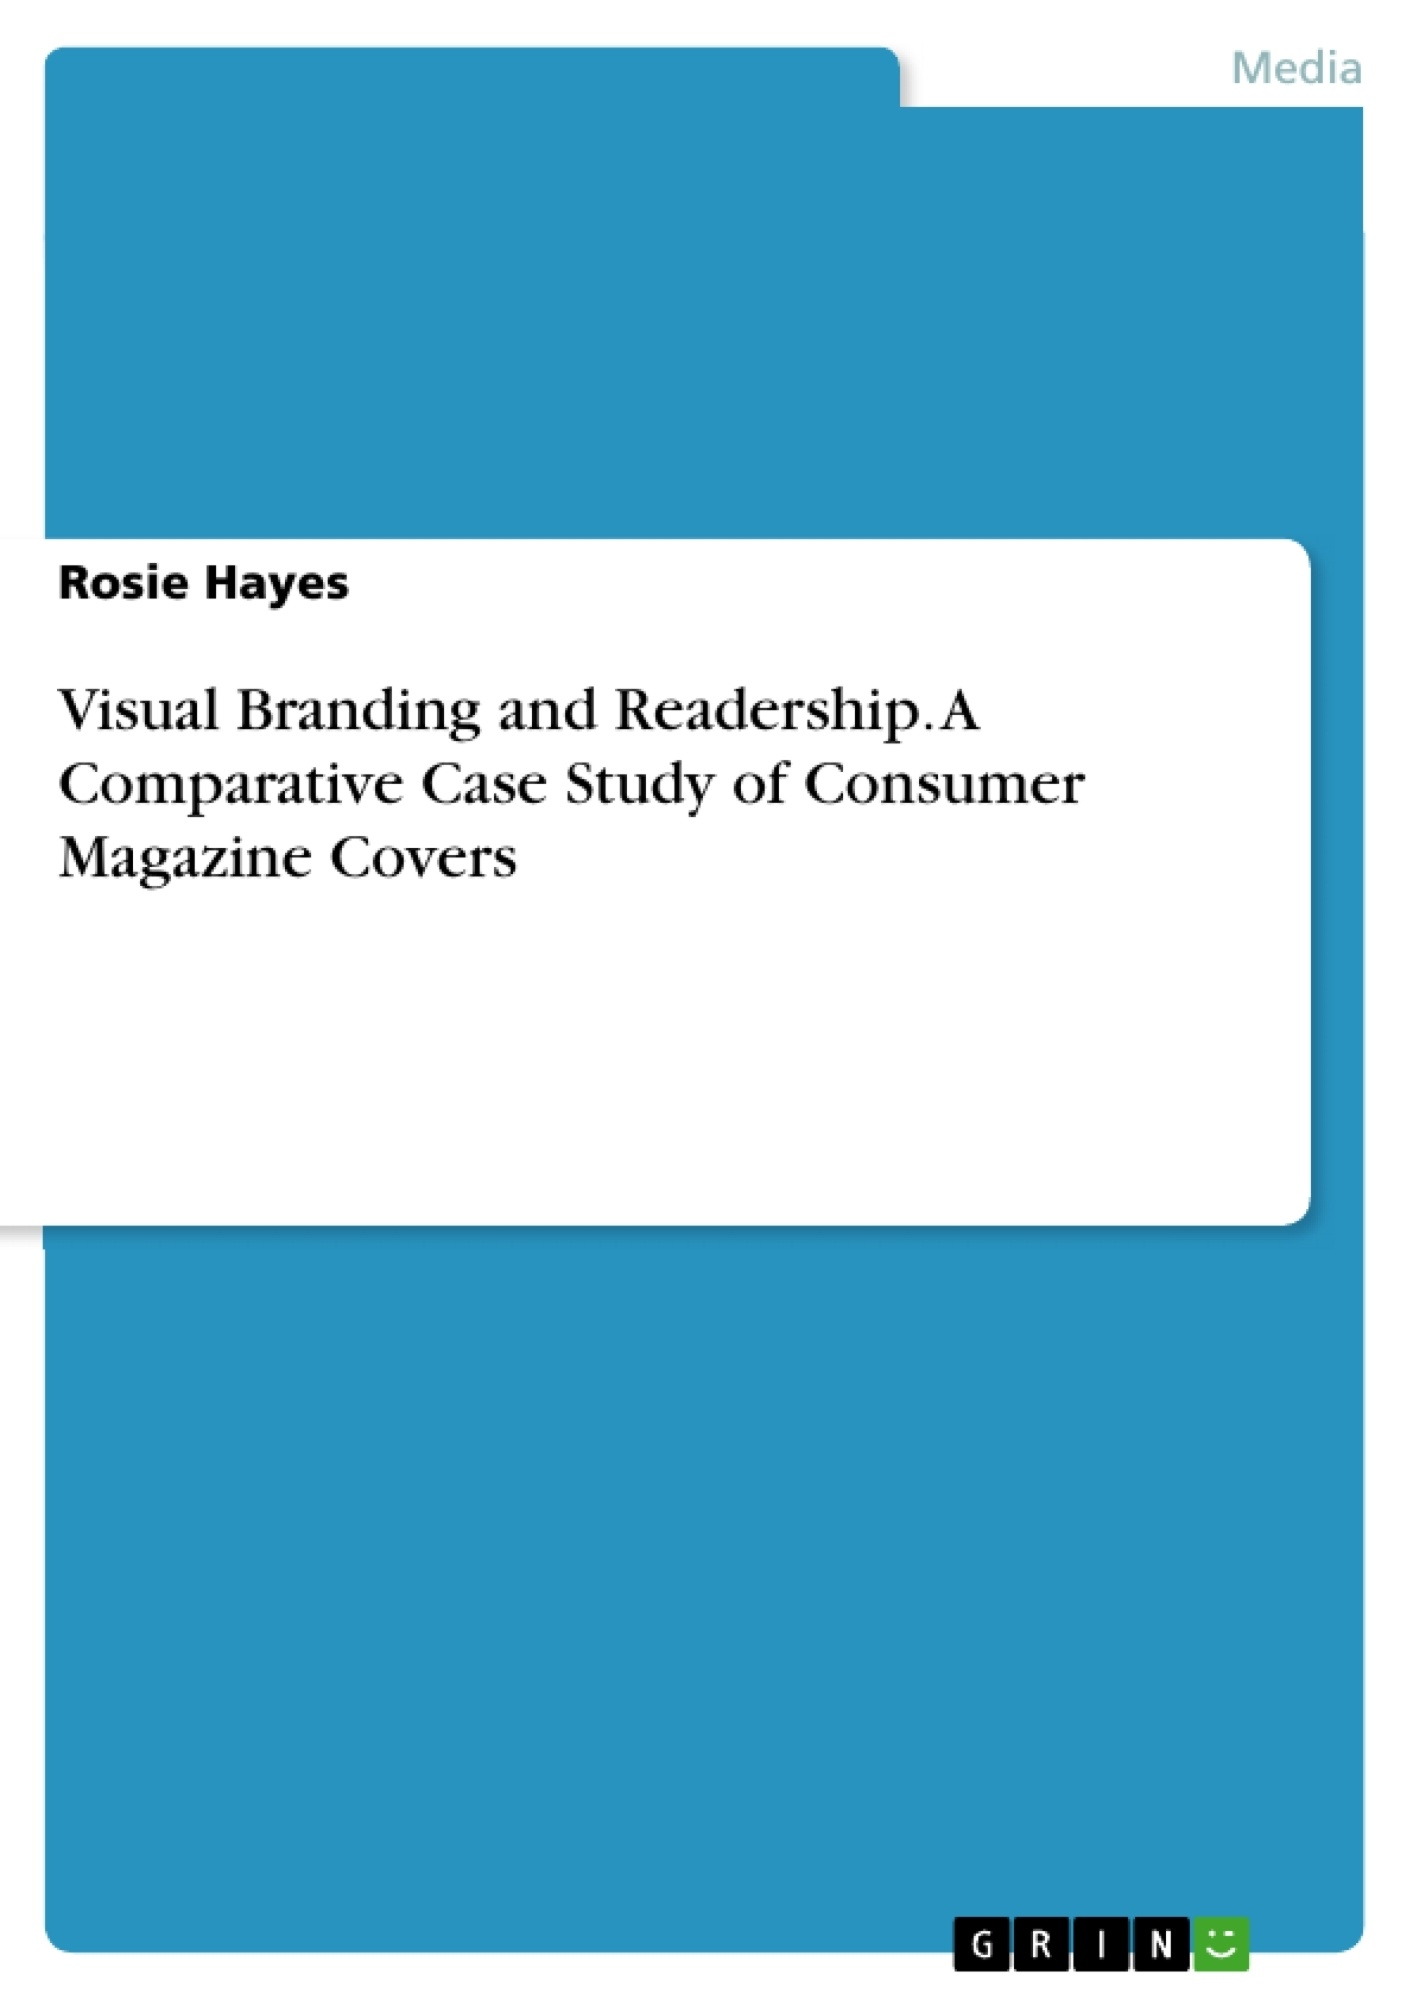 Title: Visual Branding and Readership. A Comparative Case Study of Consumer Magazine Covers